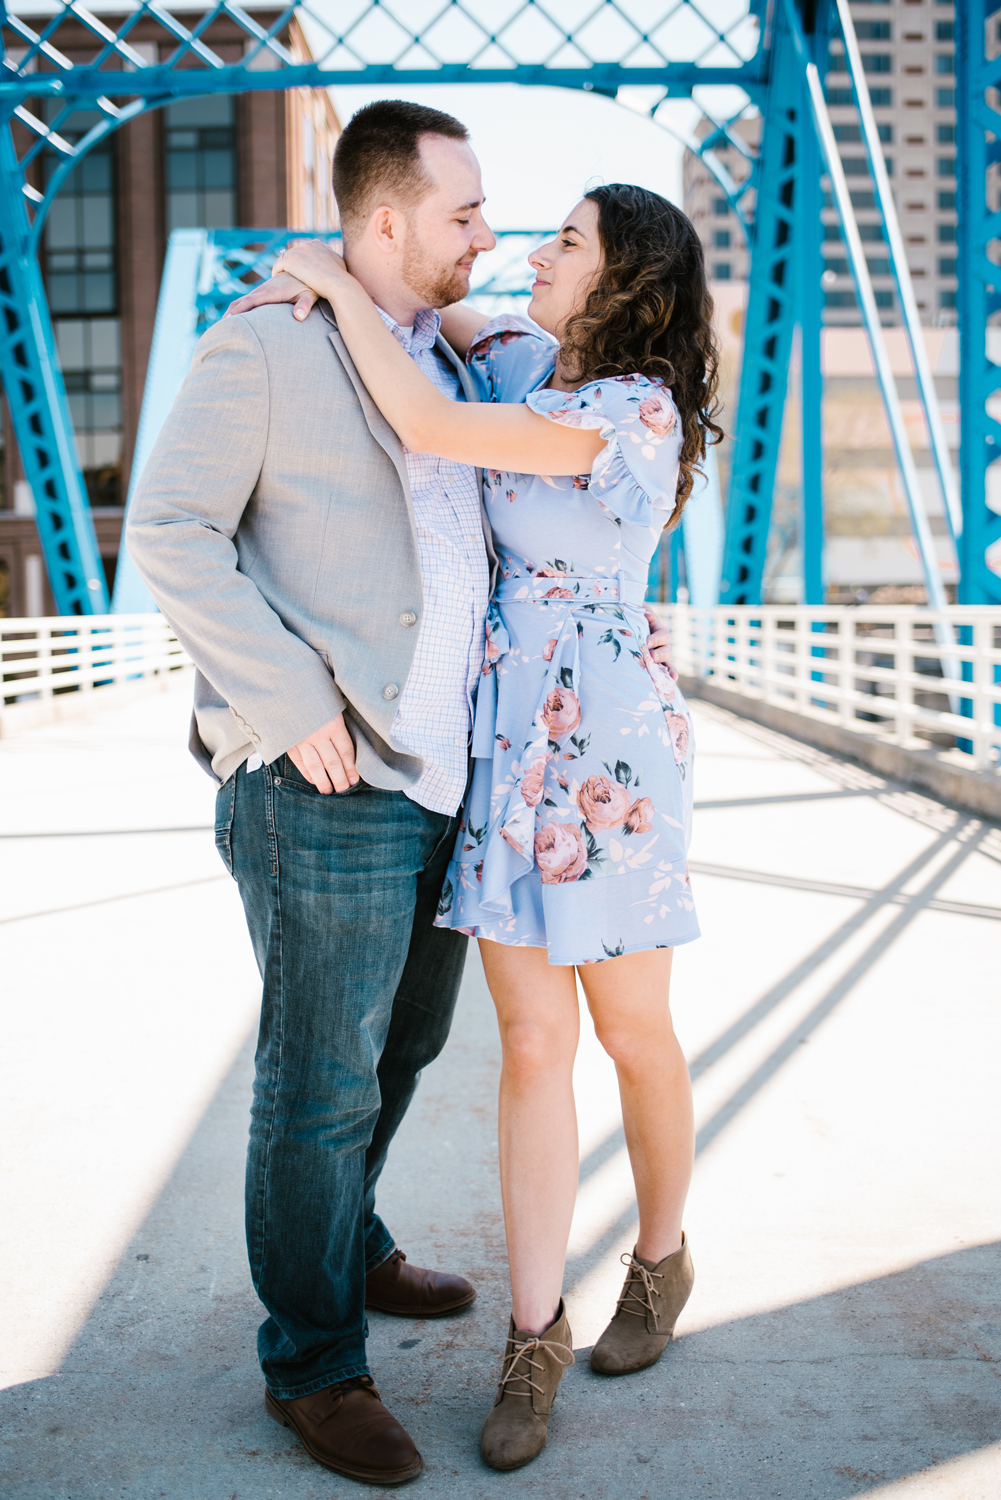 downtown-grand-rapids-michigan-engagement-photographer-spring-sydney-marie (145).jpg